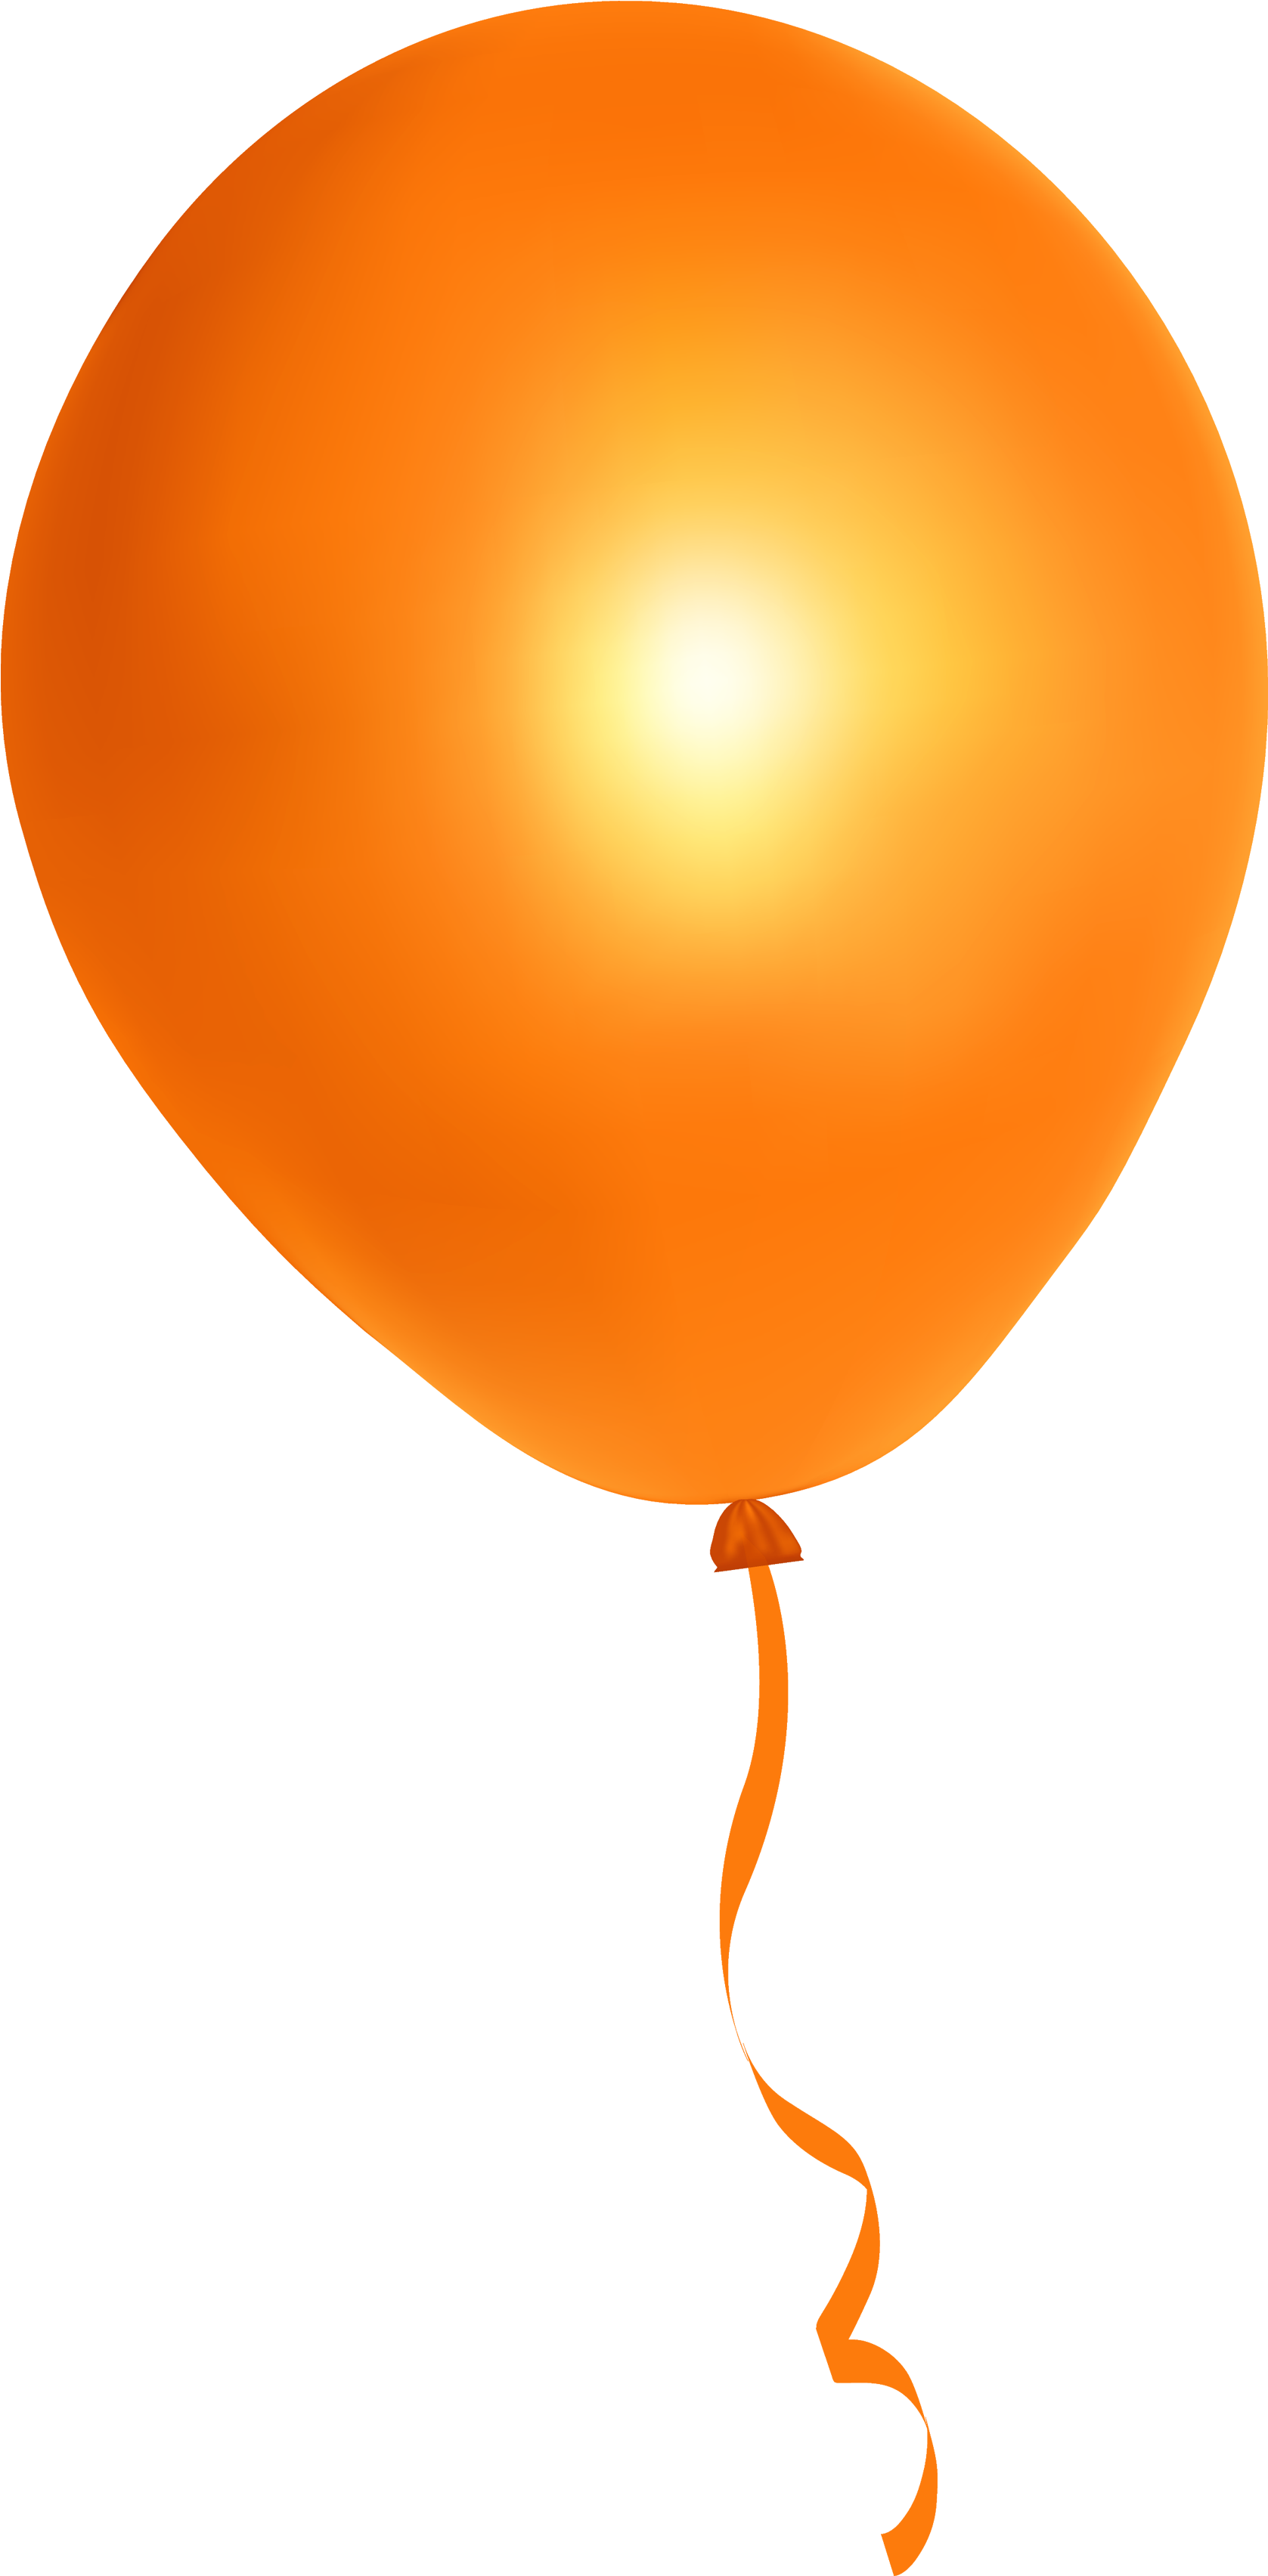 HD Balloon Png Transparent Balloon Images.